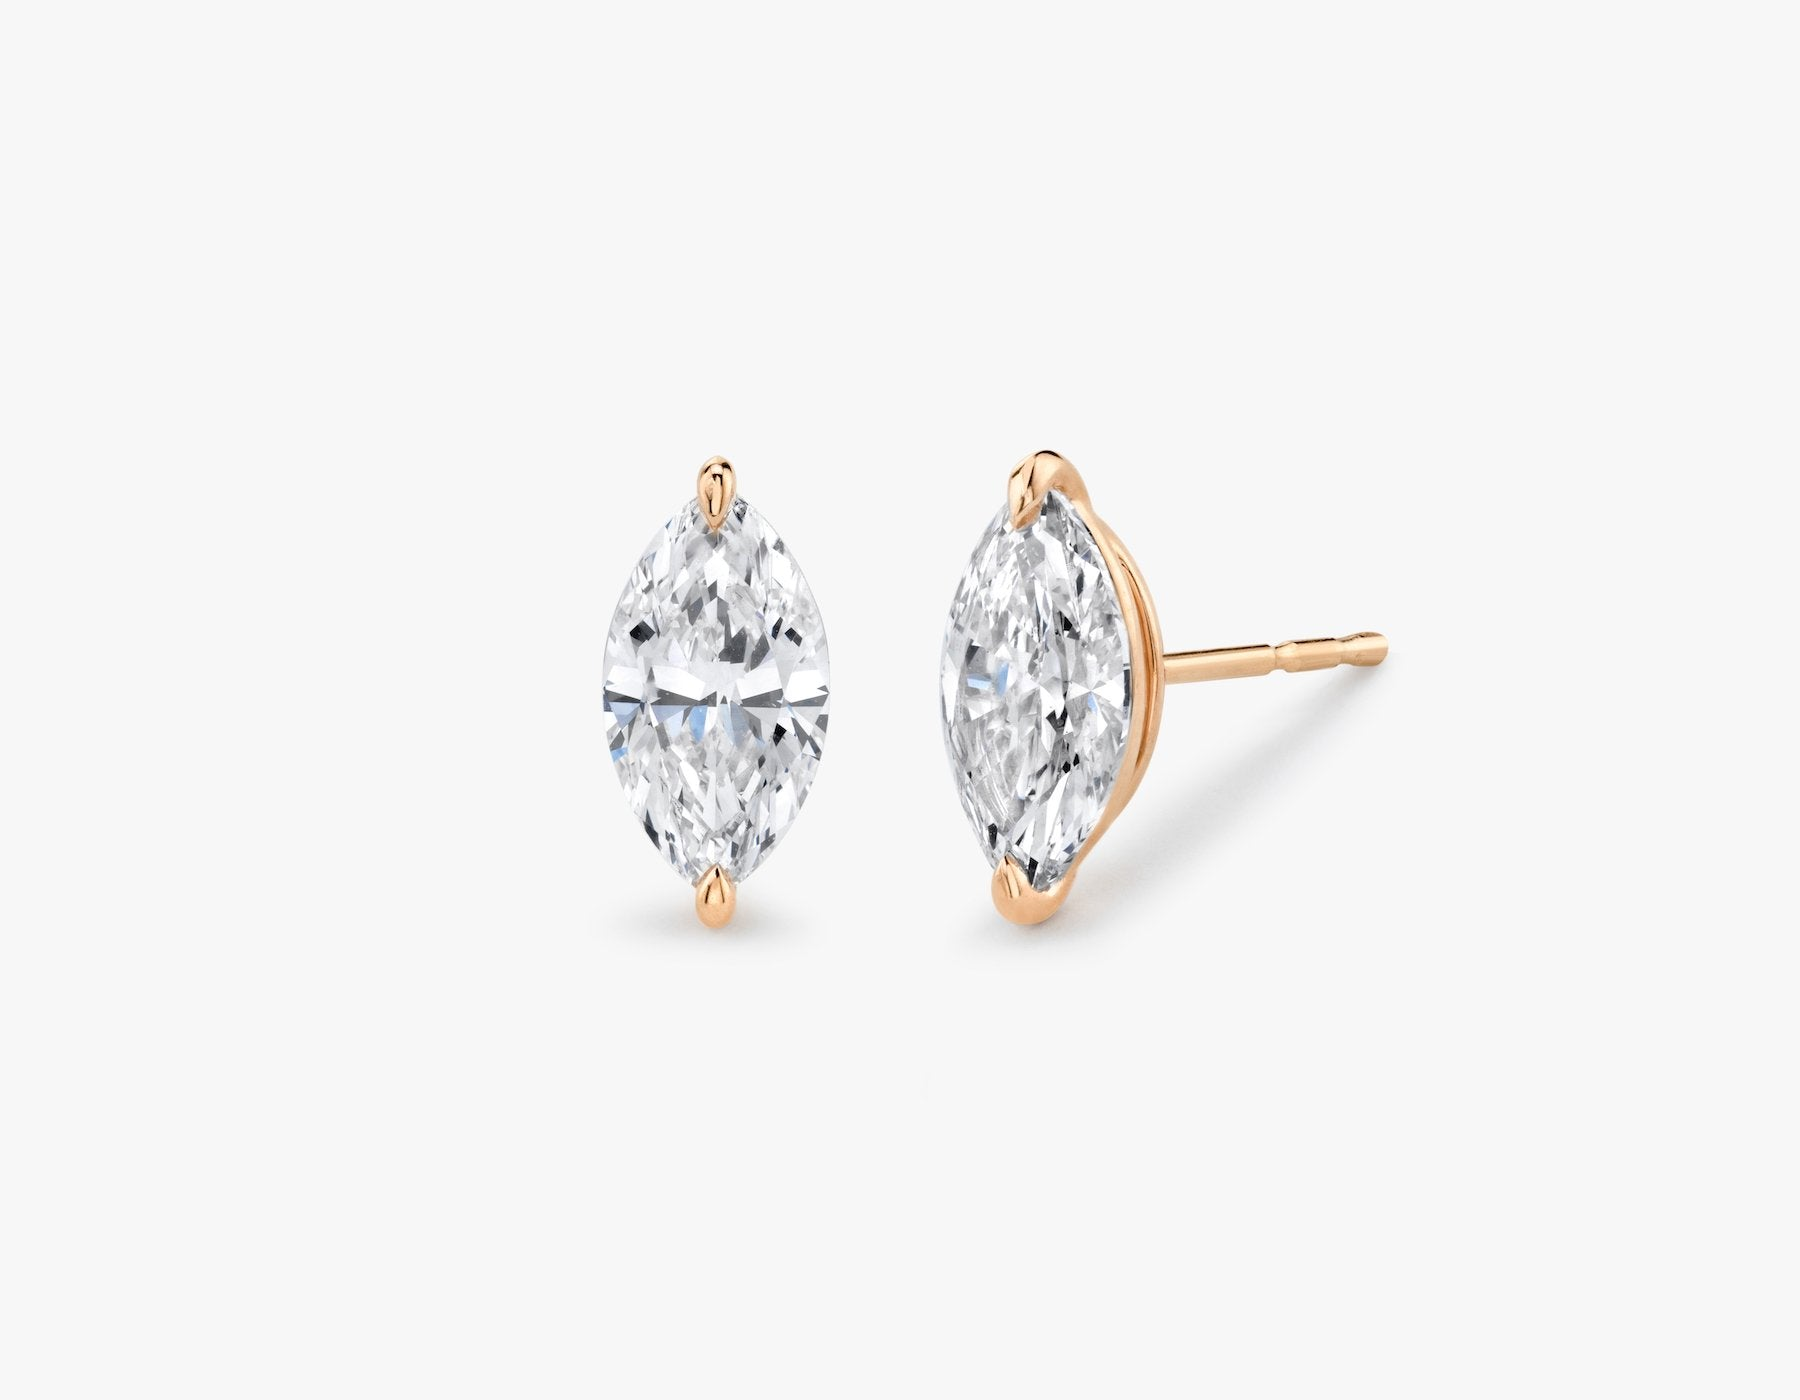 Vrai 14K solid gold solitaire marquise diamond studs earrings 1ct minimalist delicate, 14K Rose Gold